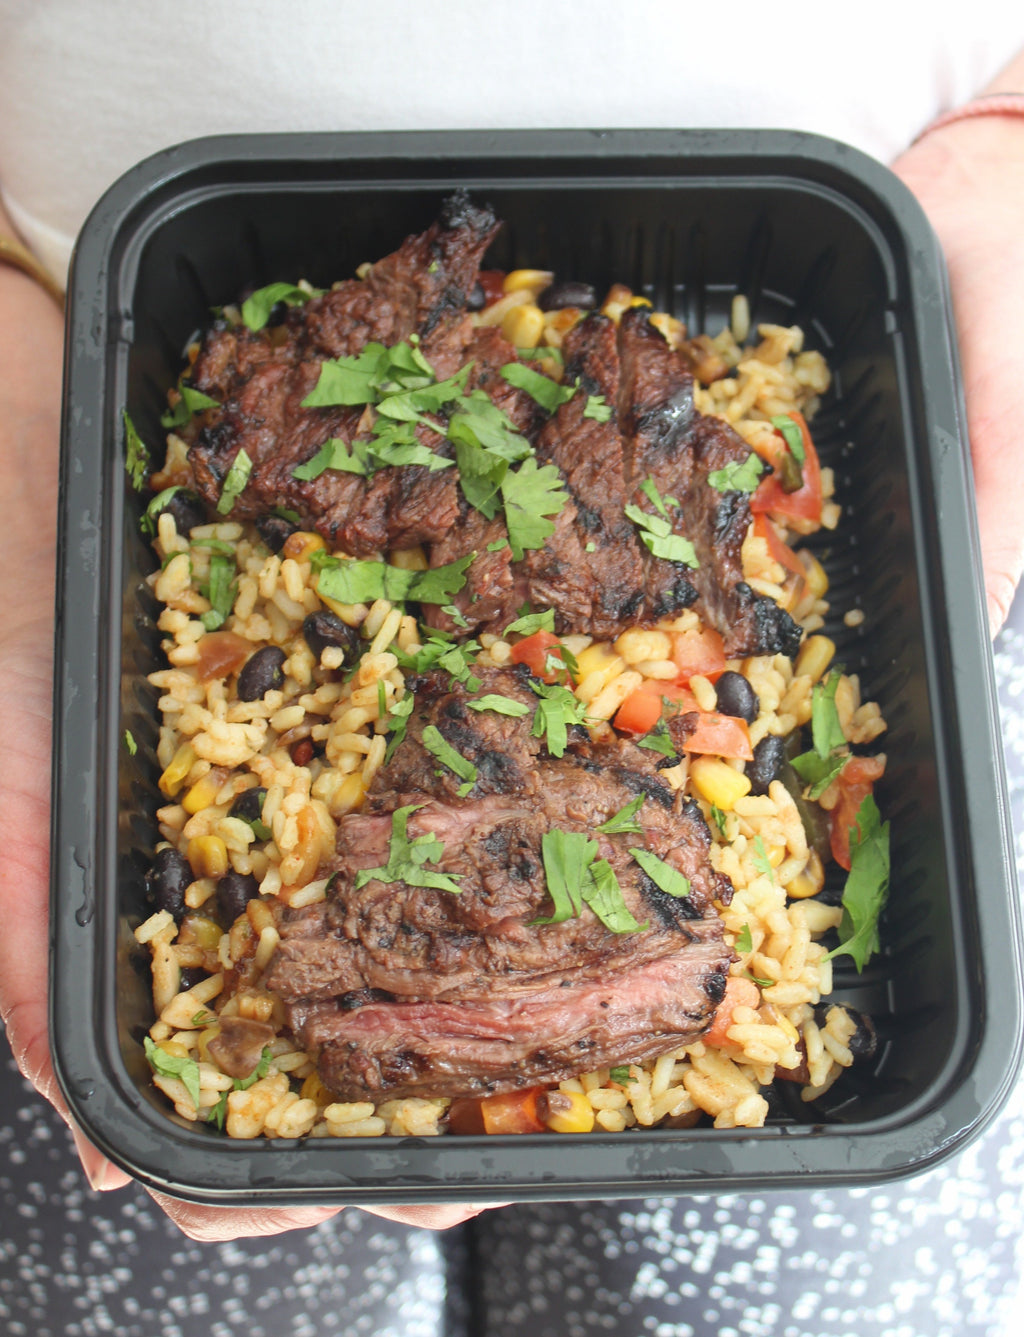 NEW - South Western Bowl with Marinated Steak Tips